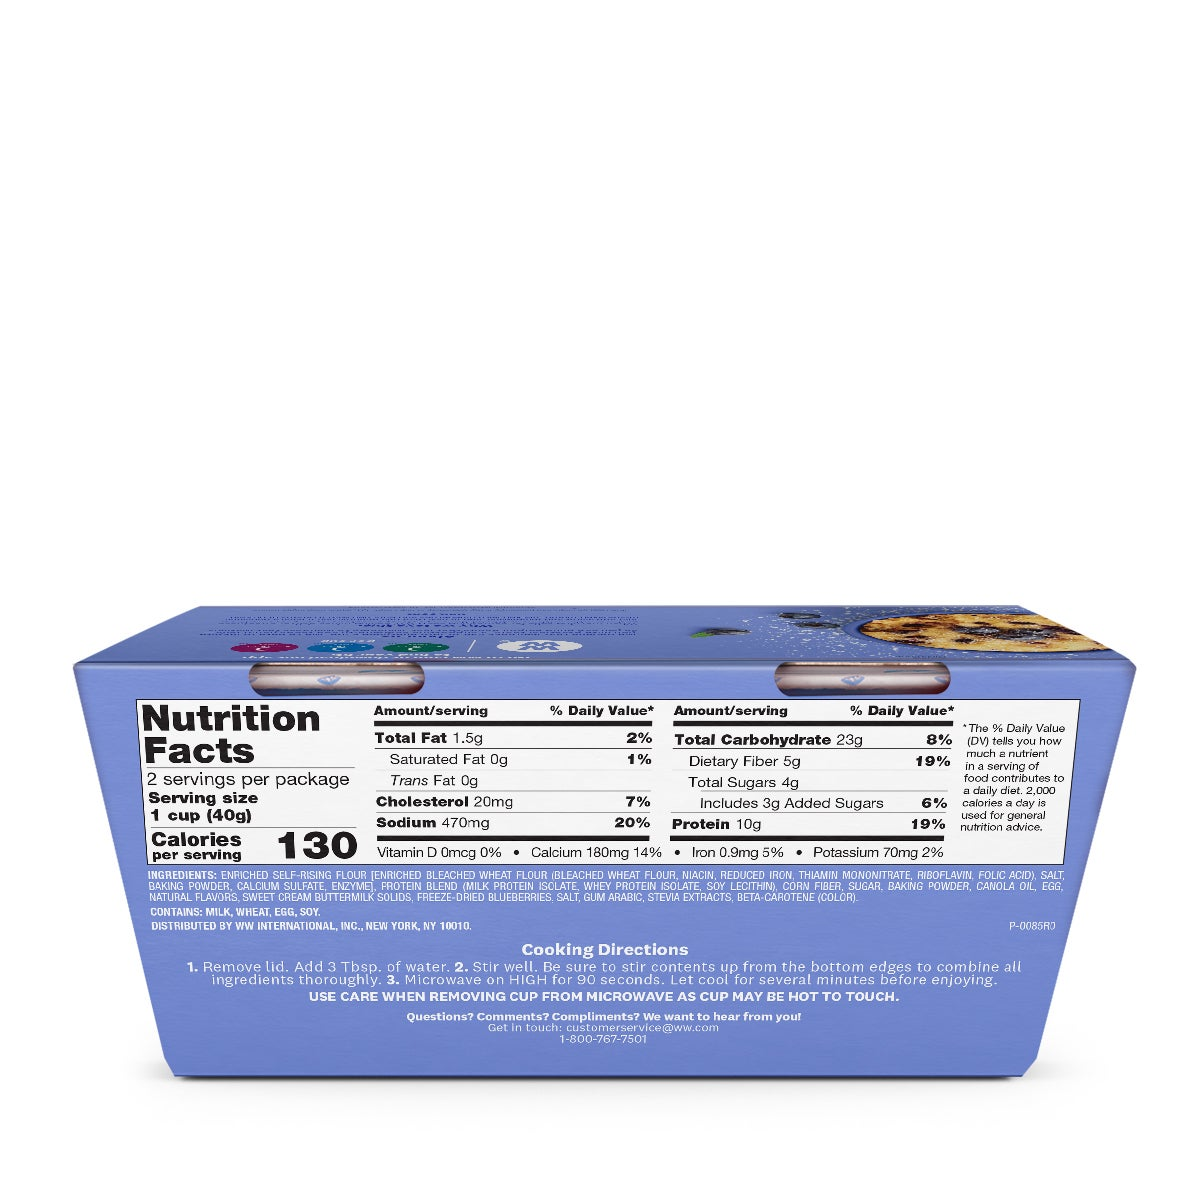 Blueberry Protein Muffin Mix - back of box